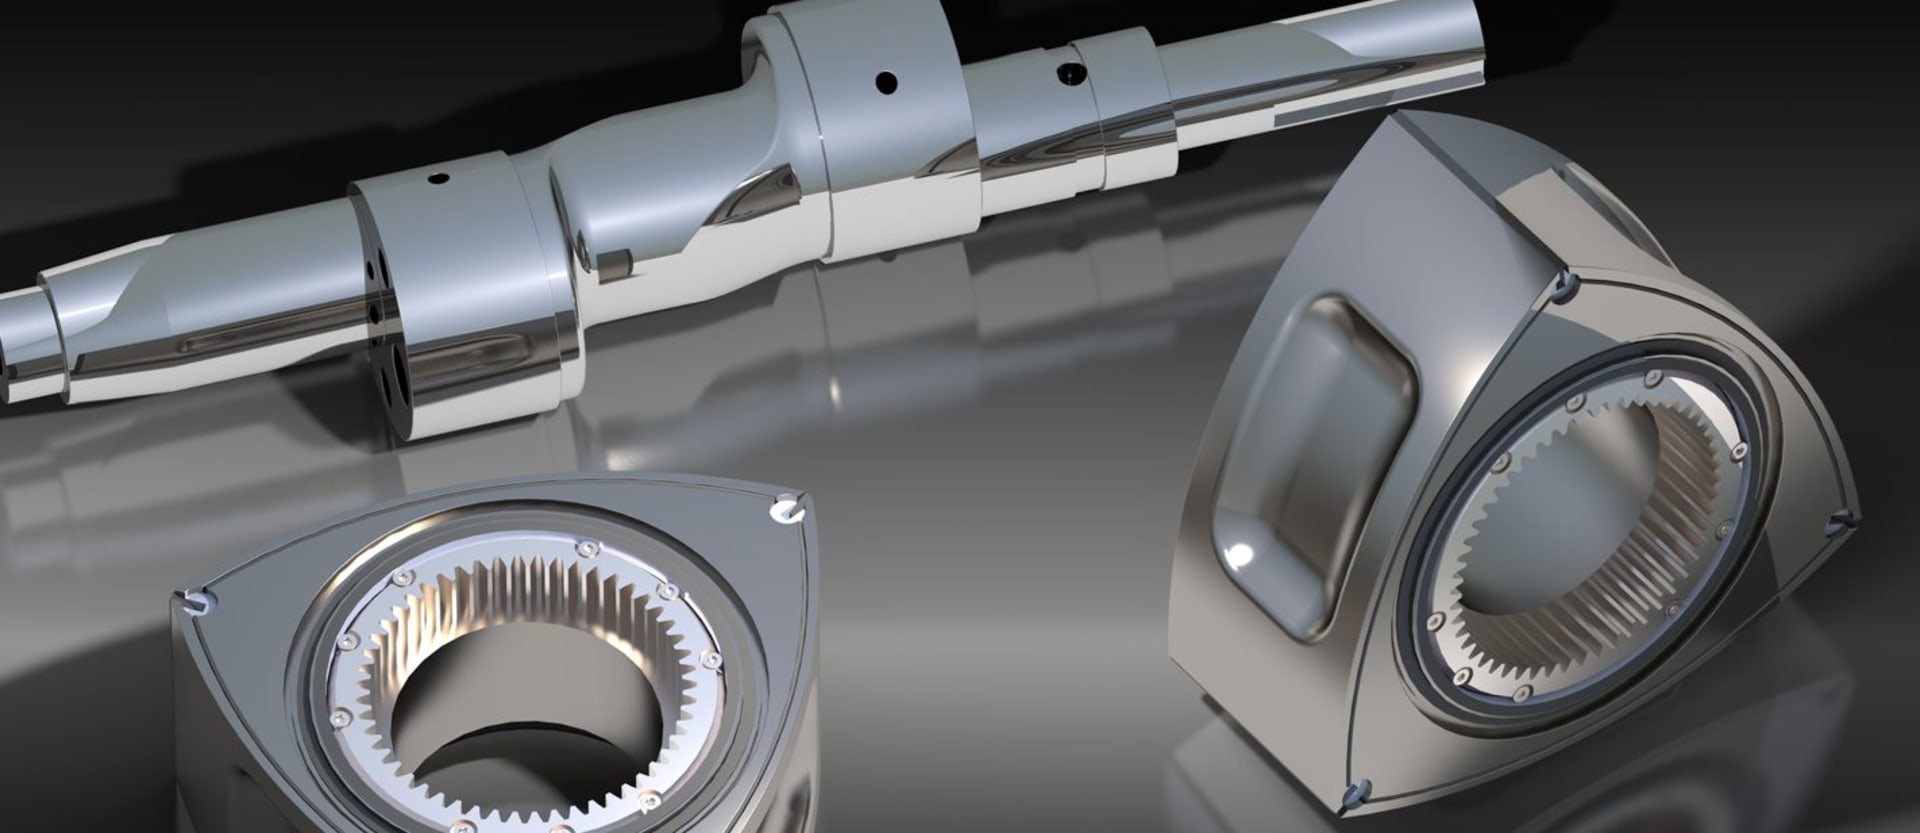 Rotary engine internal components